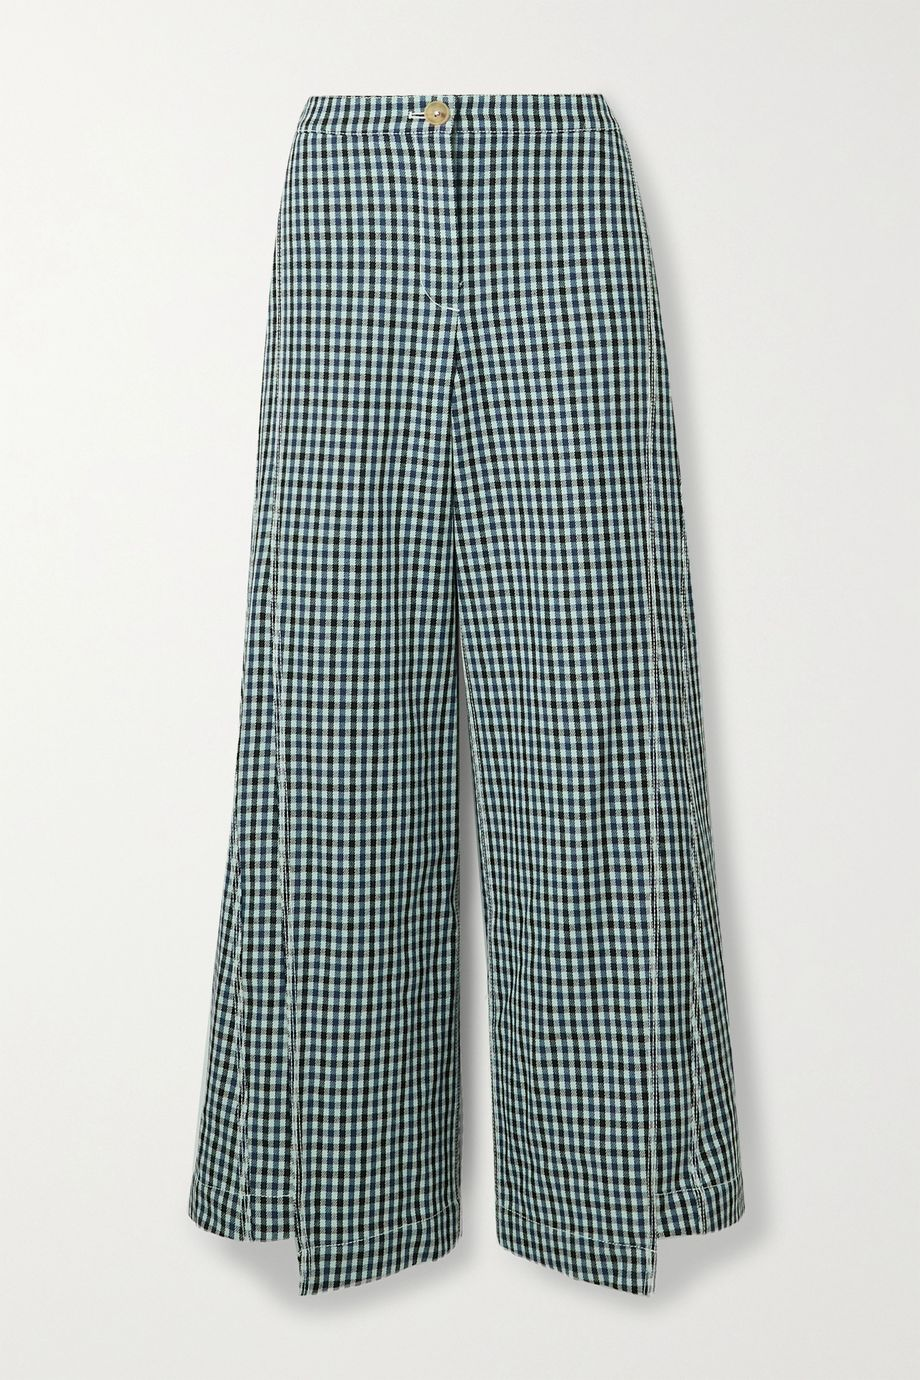 Lanvin Pantalon large en tweed de laine à carreaux